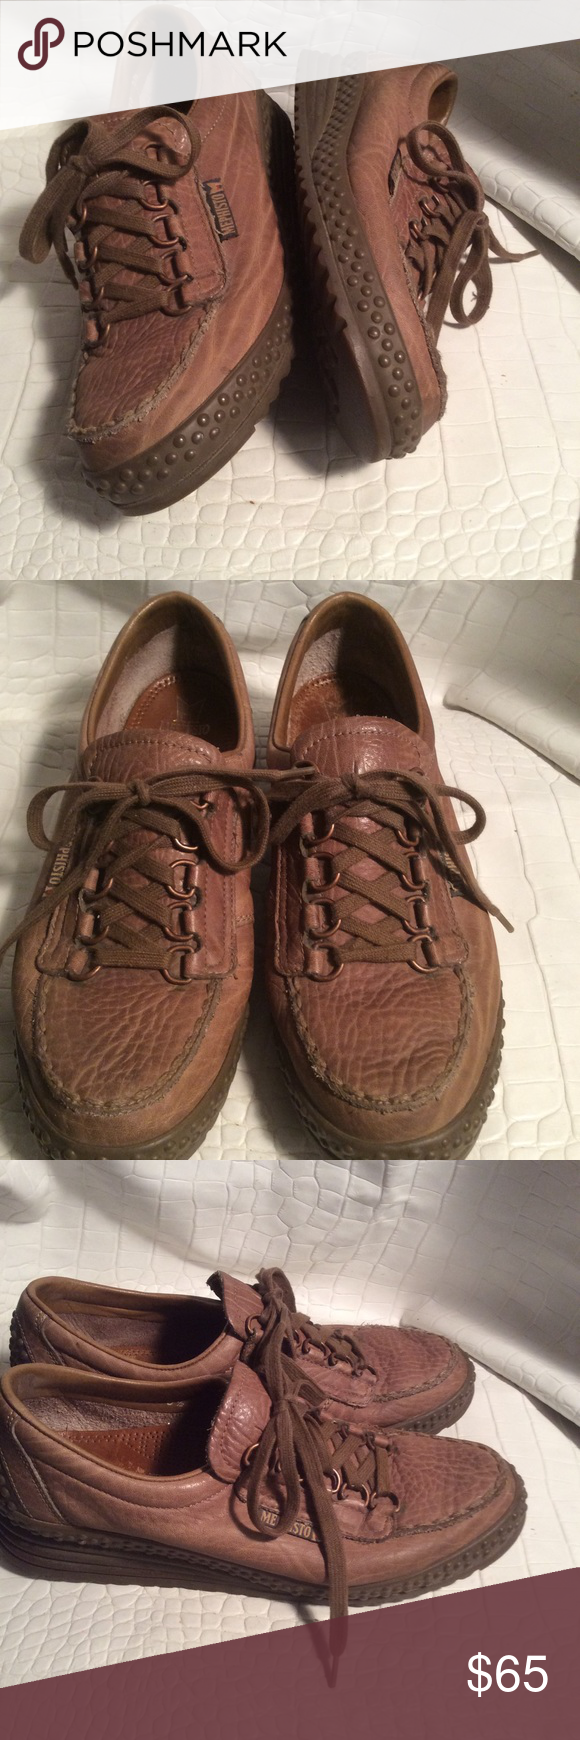 5473ed9904 Mephisto sneakers Preloved mephisto trampoline sneakers genuine leather  good condition,made in France Mephisto Shoes Sneakers